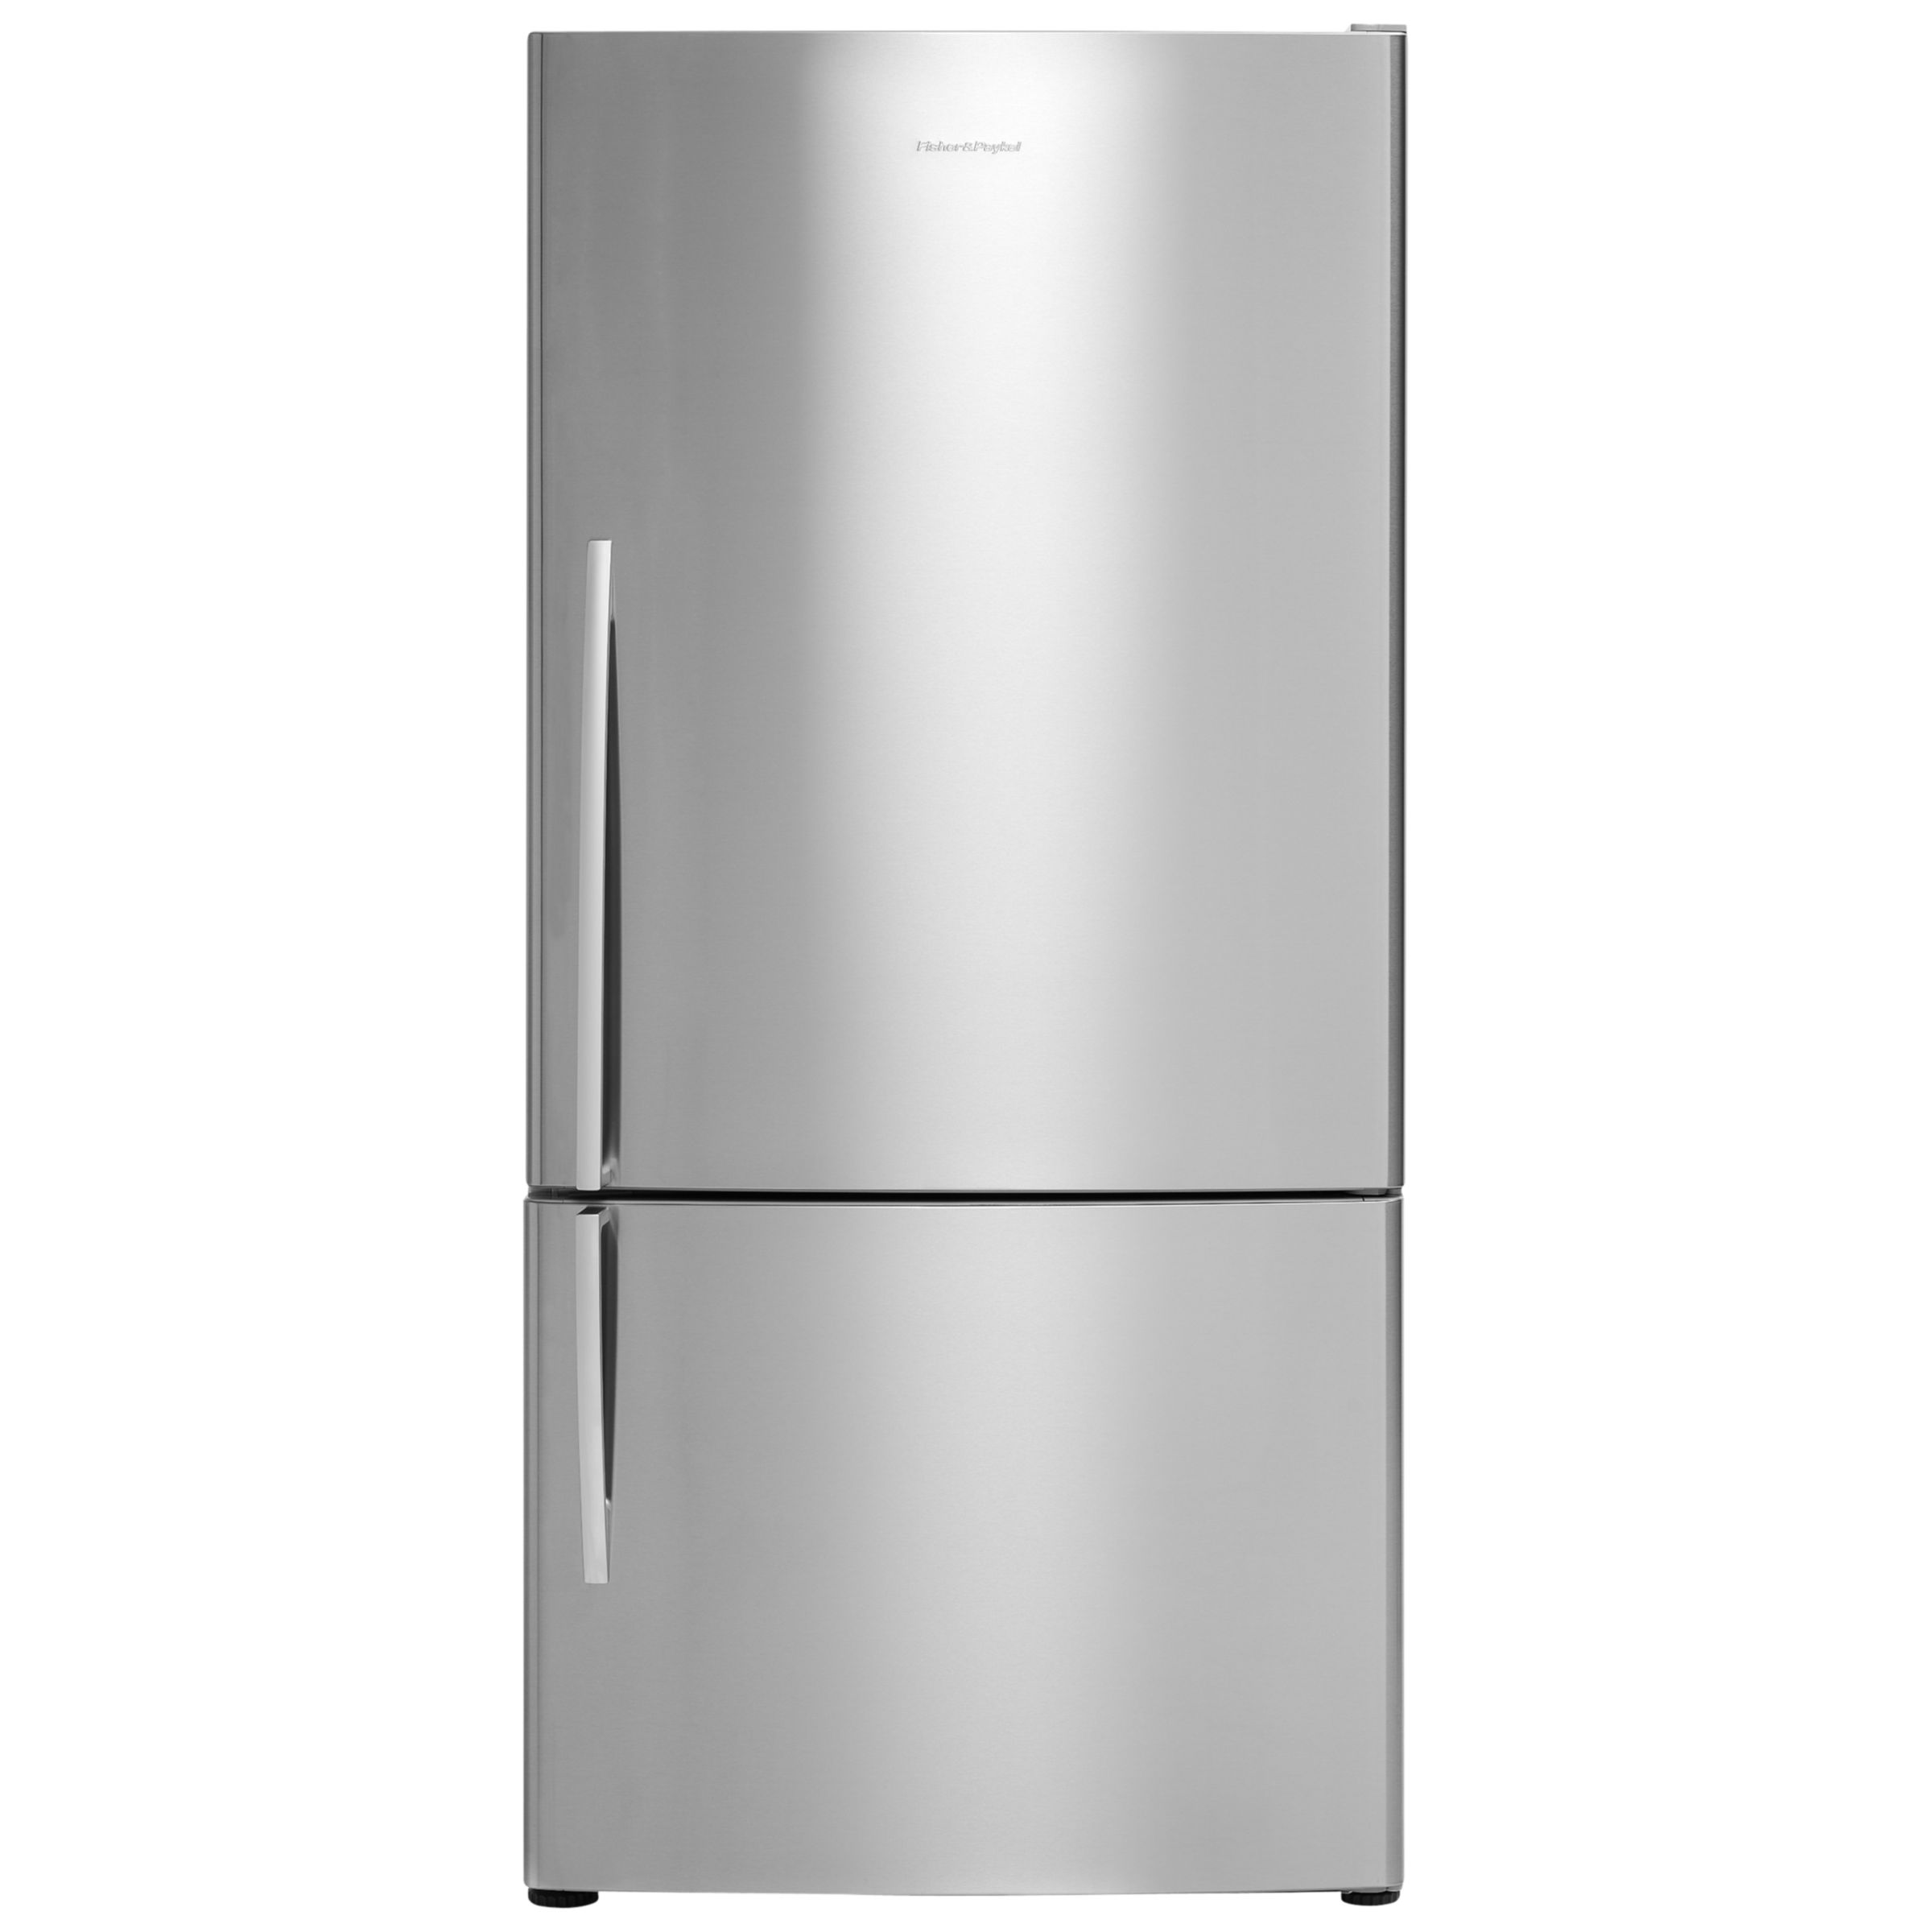 Fisher & Paykel Fisher & Paykel E442BRX4 ActiveSmart Fridge Freezer, A+ Energy Rating, 68cm Wide, Stainless Steel